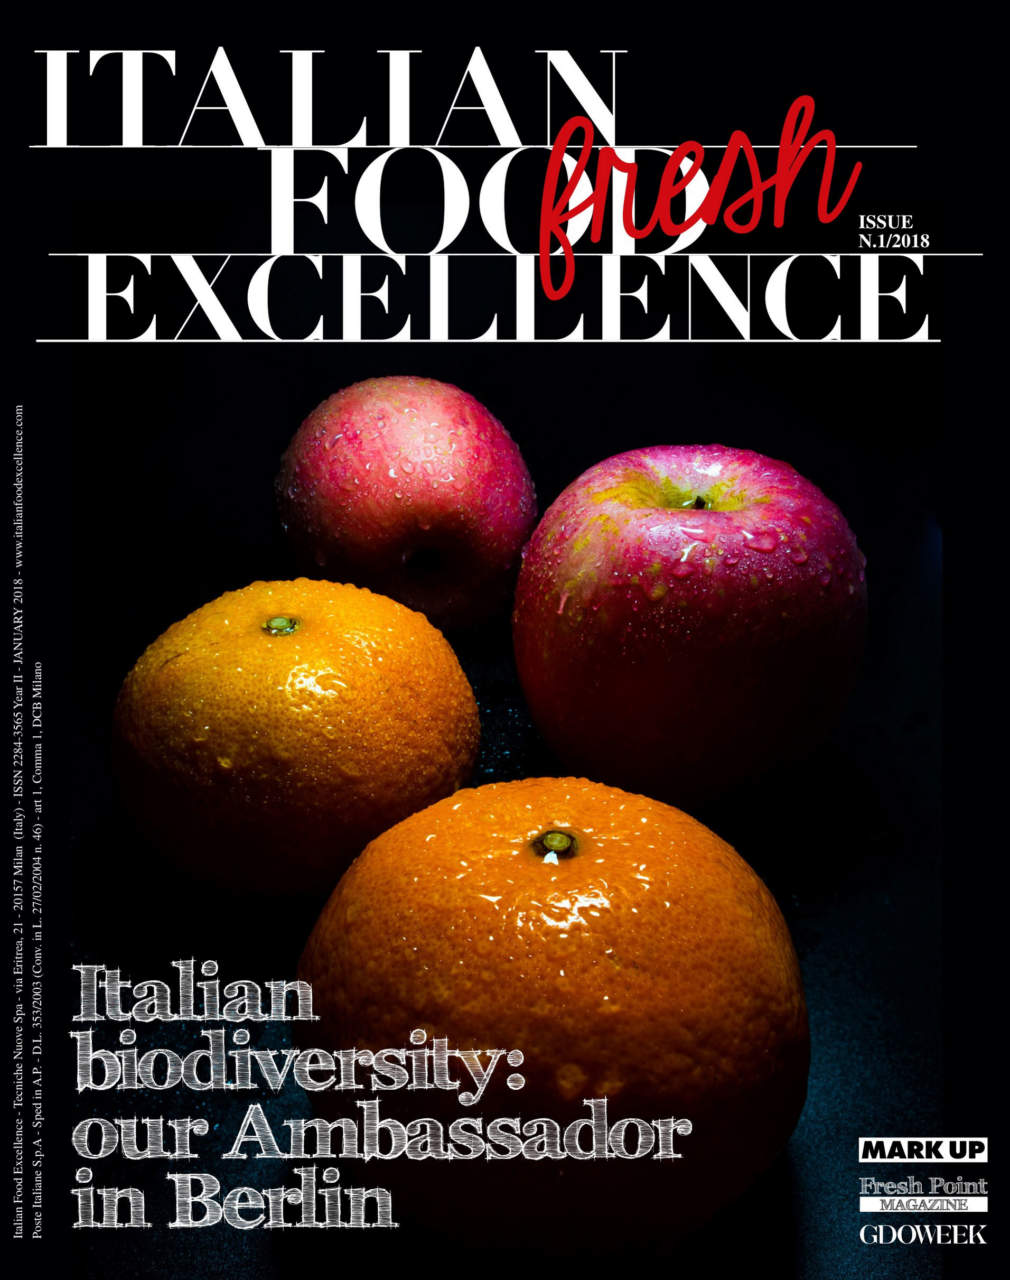 Italian Food Excellence n.1/2018